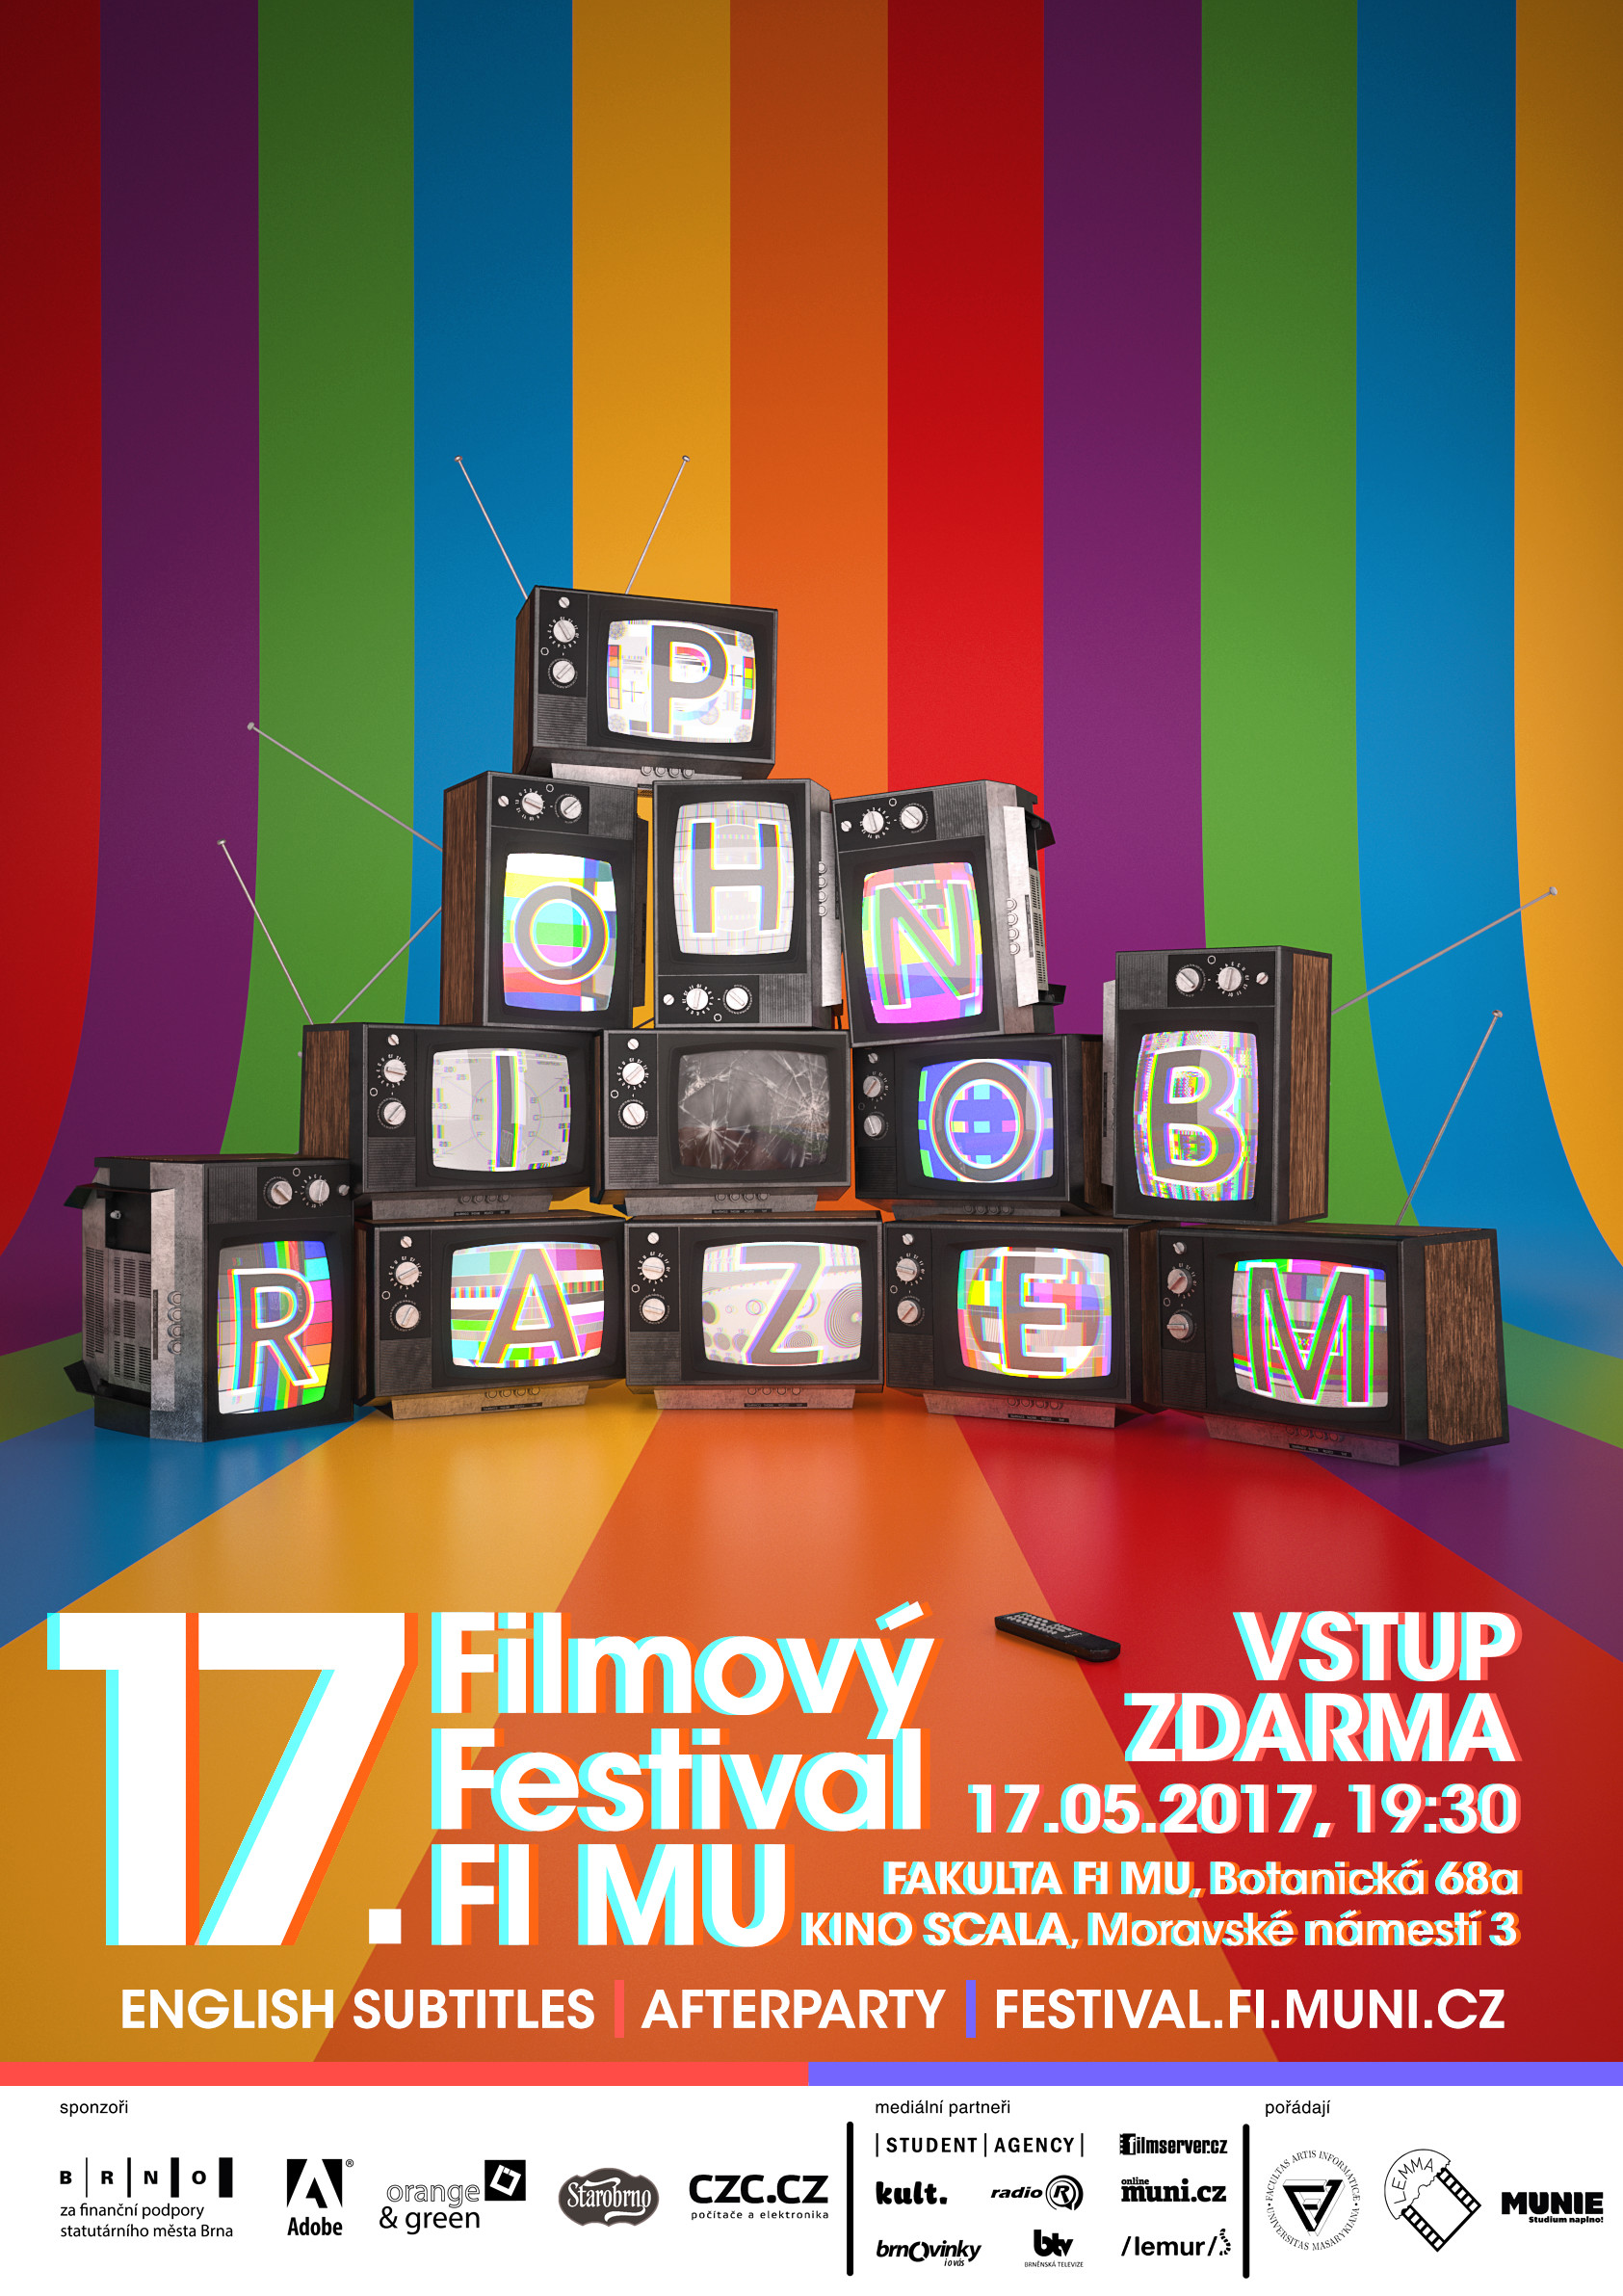 ArtStation - Poster Concept for 17th Film Festival of the